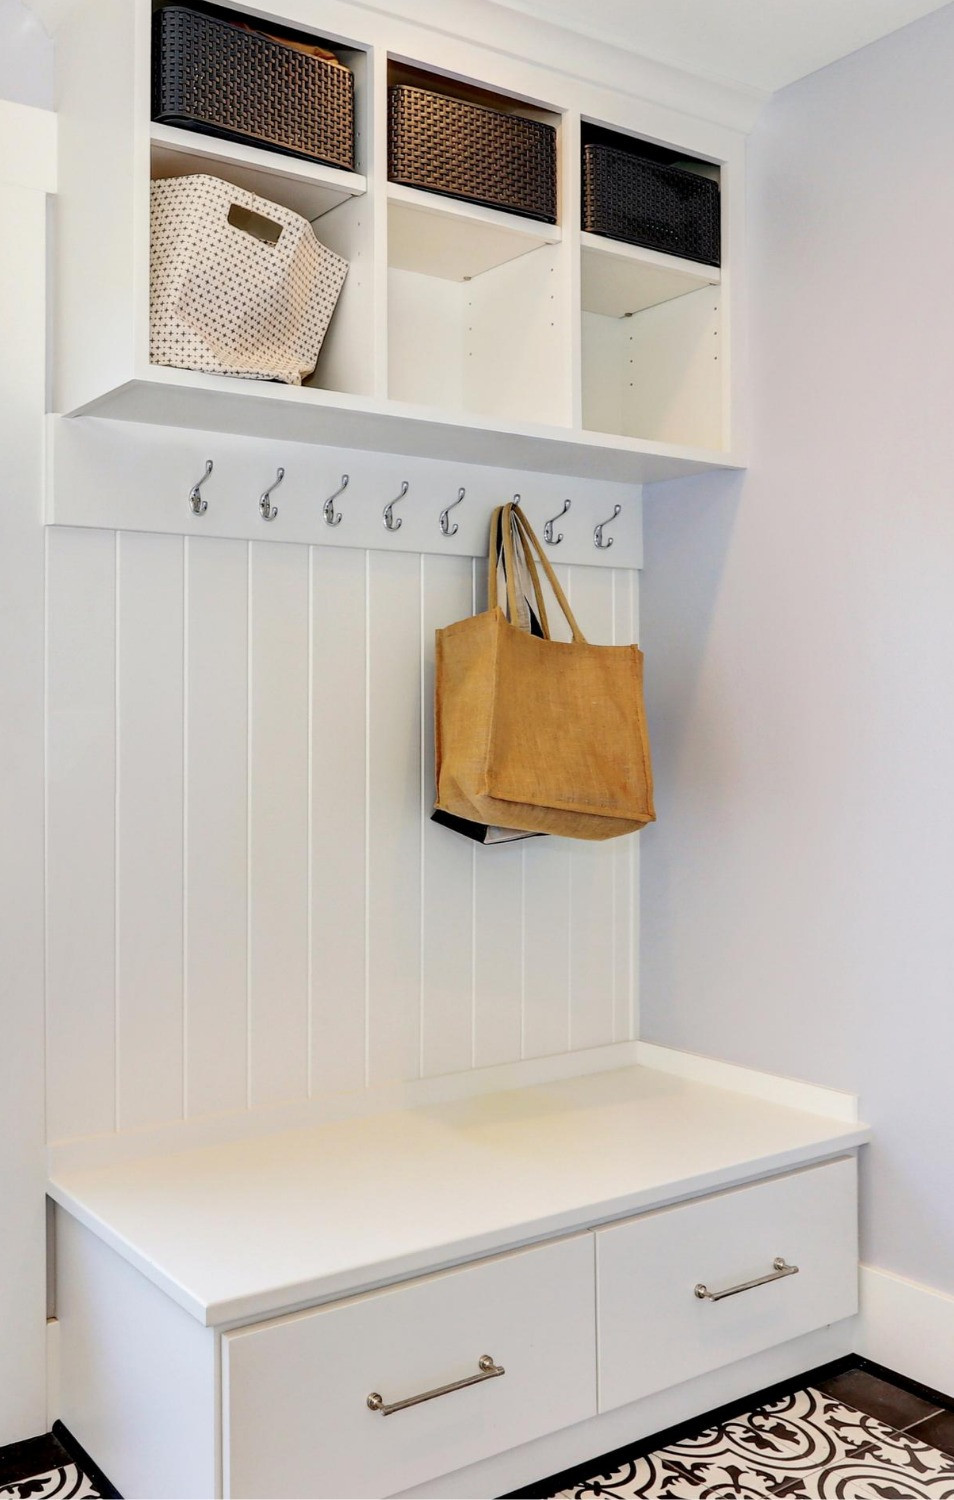 Storage Cabinet with Hooks and Baskets